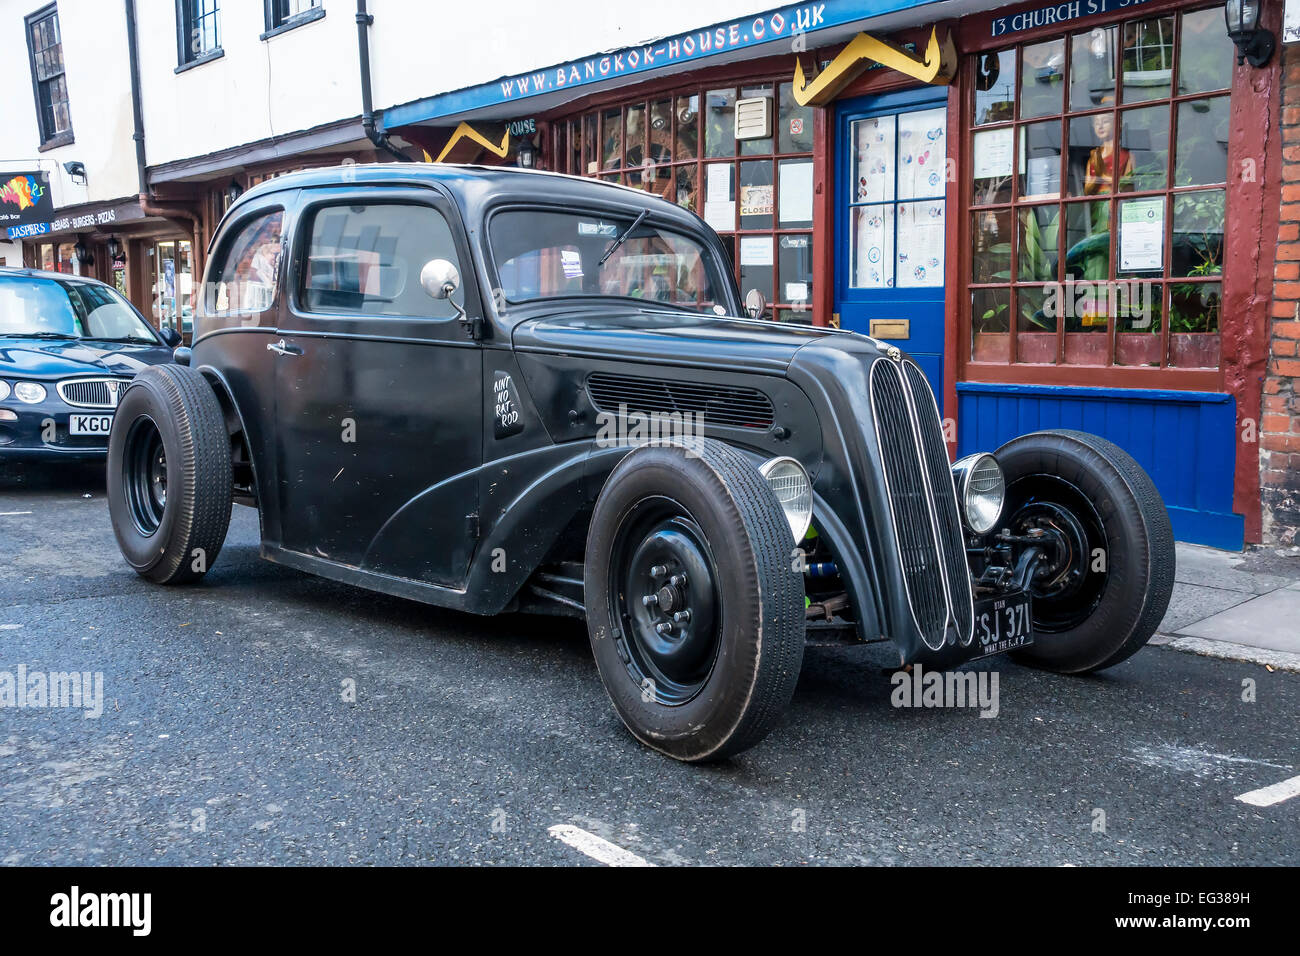 Hot Rod with V8 Engine Stock Photo: 78748365 - Alamy